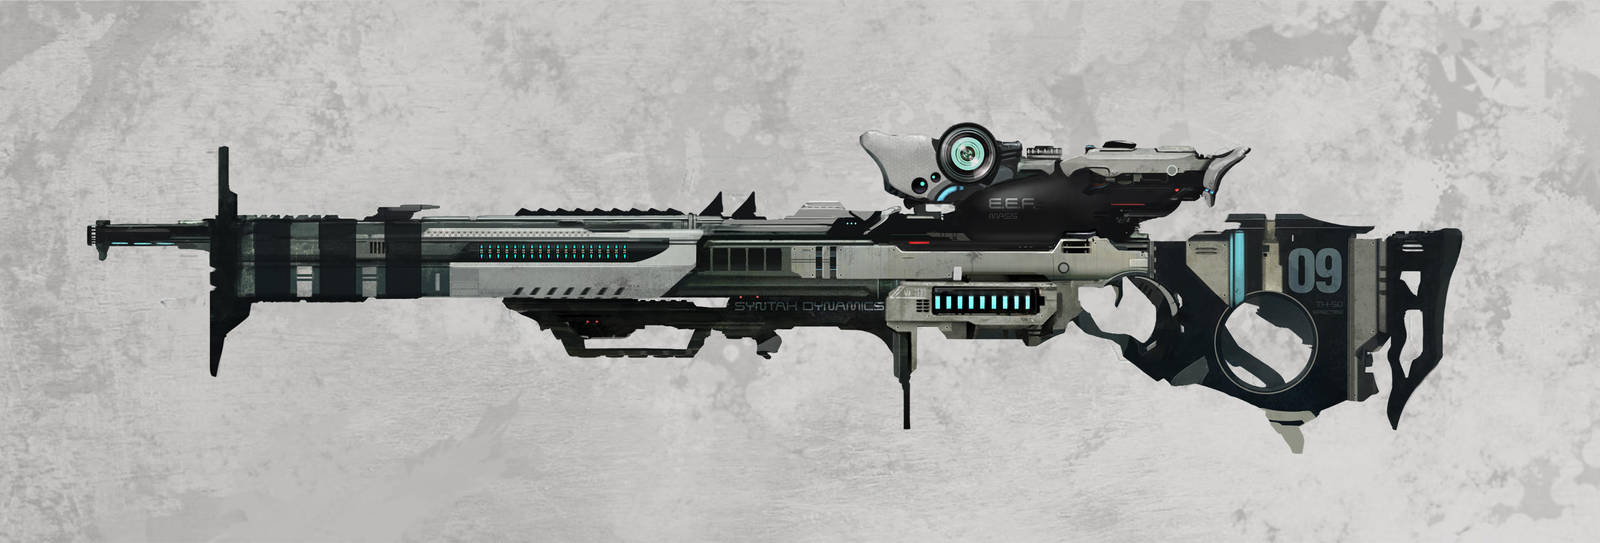 TH-50 SPECTRE Sniper Rifle by N-Deed